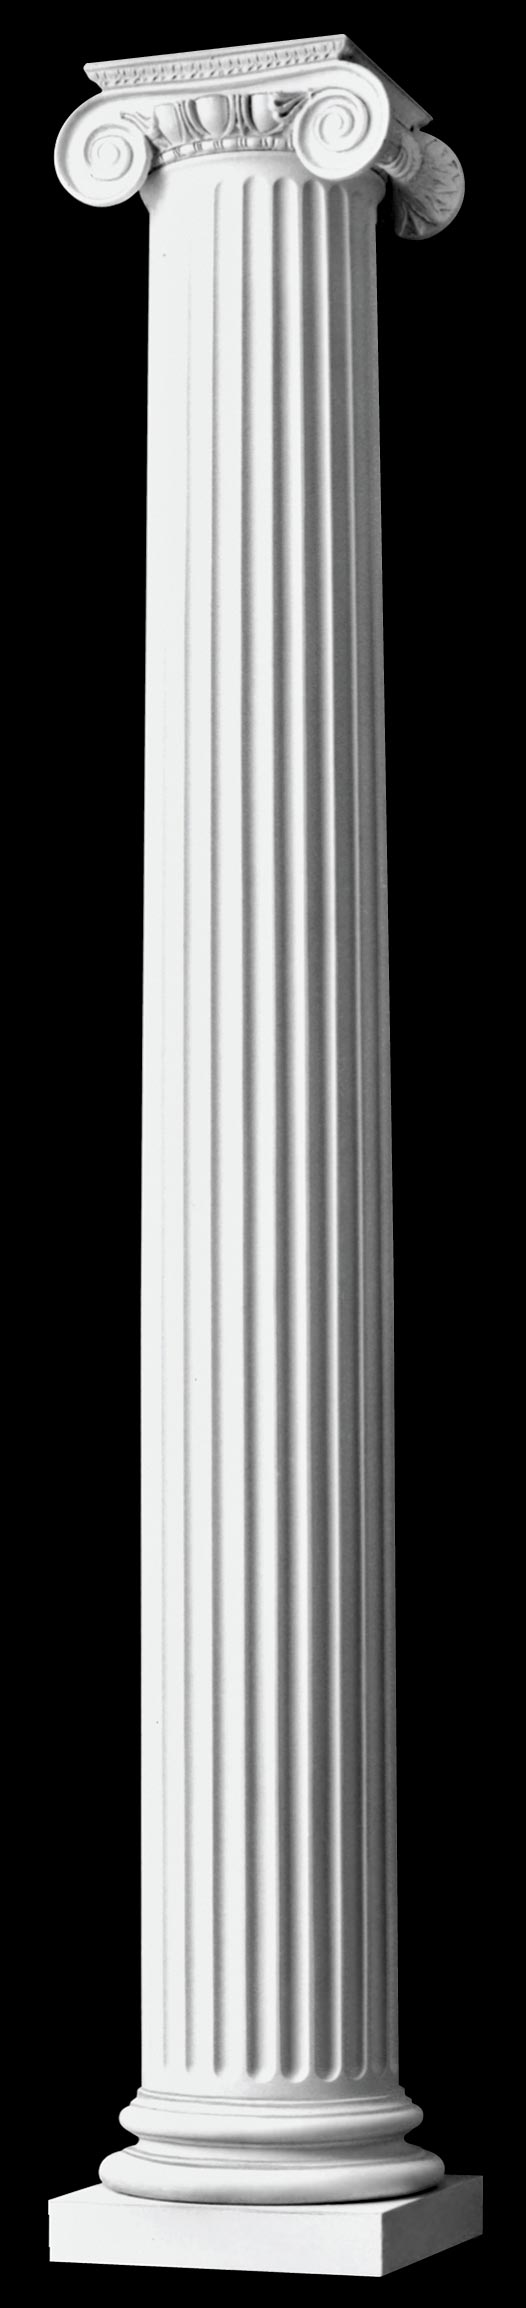 Authentic replication roman ionic wood columns fluted for Architectural wood columns